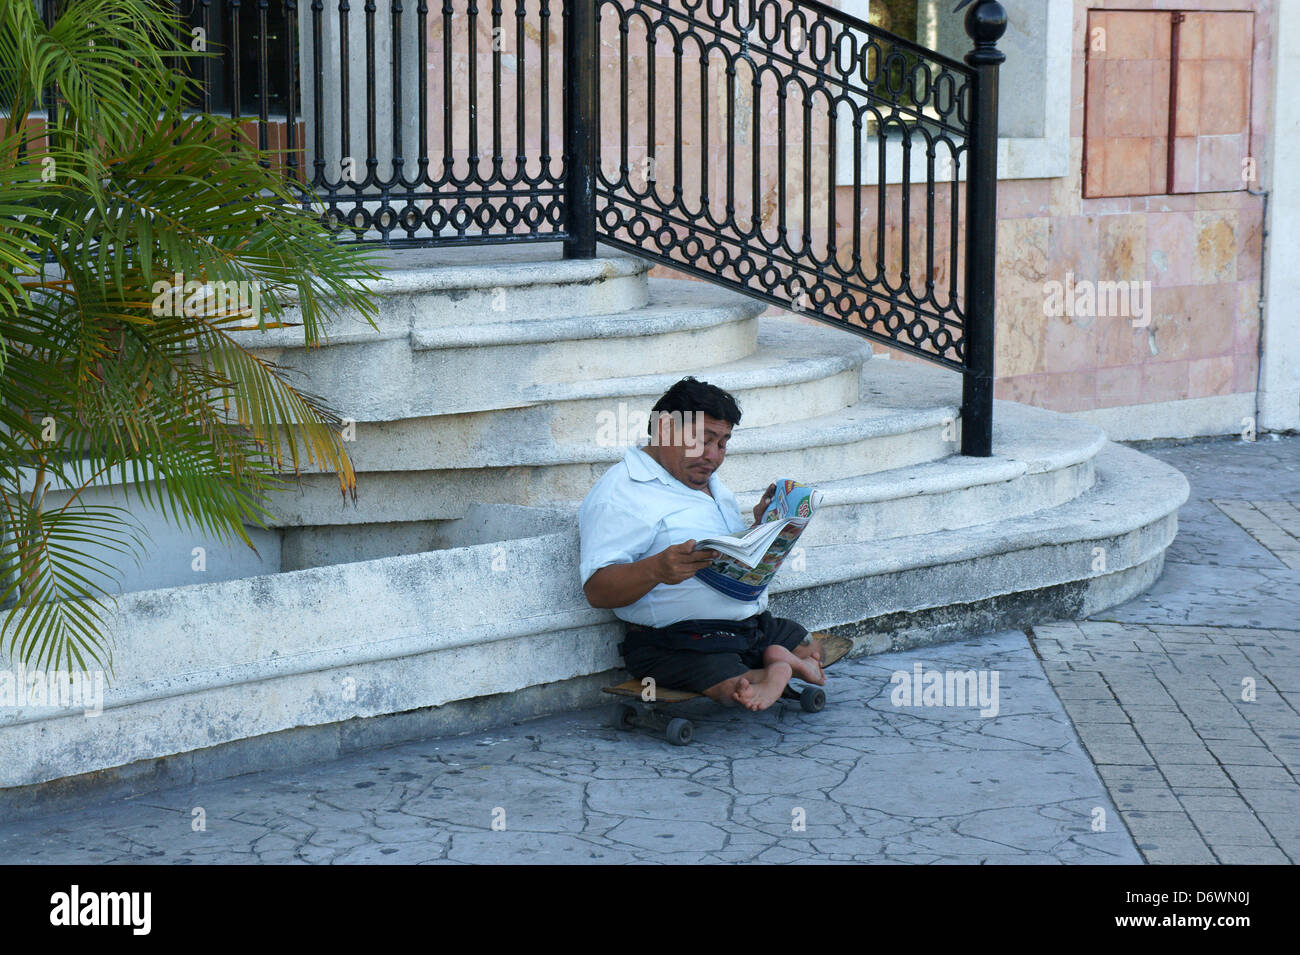 Mexican man with deformed legs and feet sitting on a skateboard and reading a newspaper, Cancun, Quintana Roo, Mexico - Stock Image